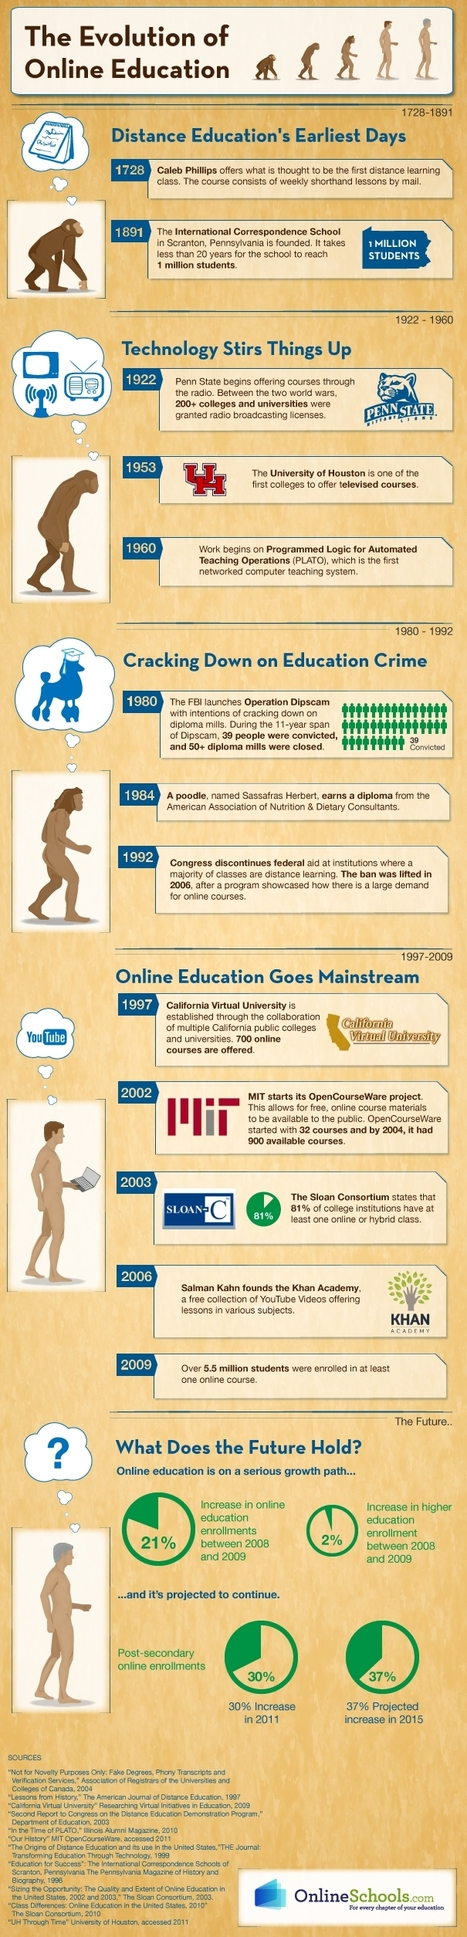 Did You Know? Distance Education Has Been Around Since 1728 | A New Society, a new education! | Scoop.it